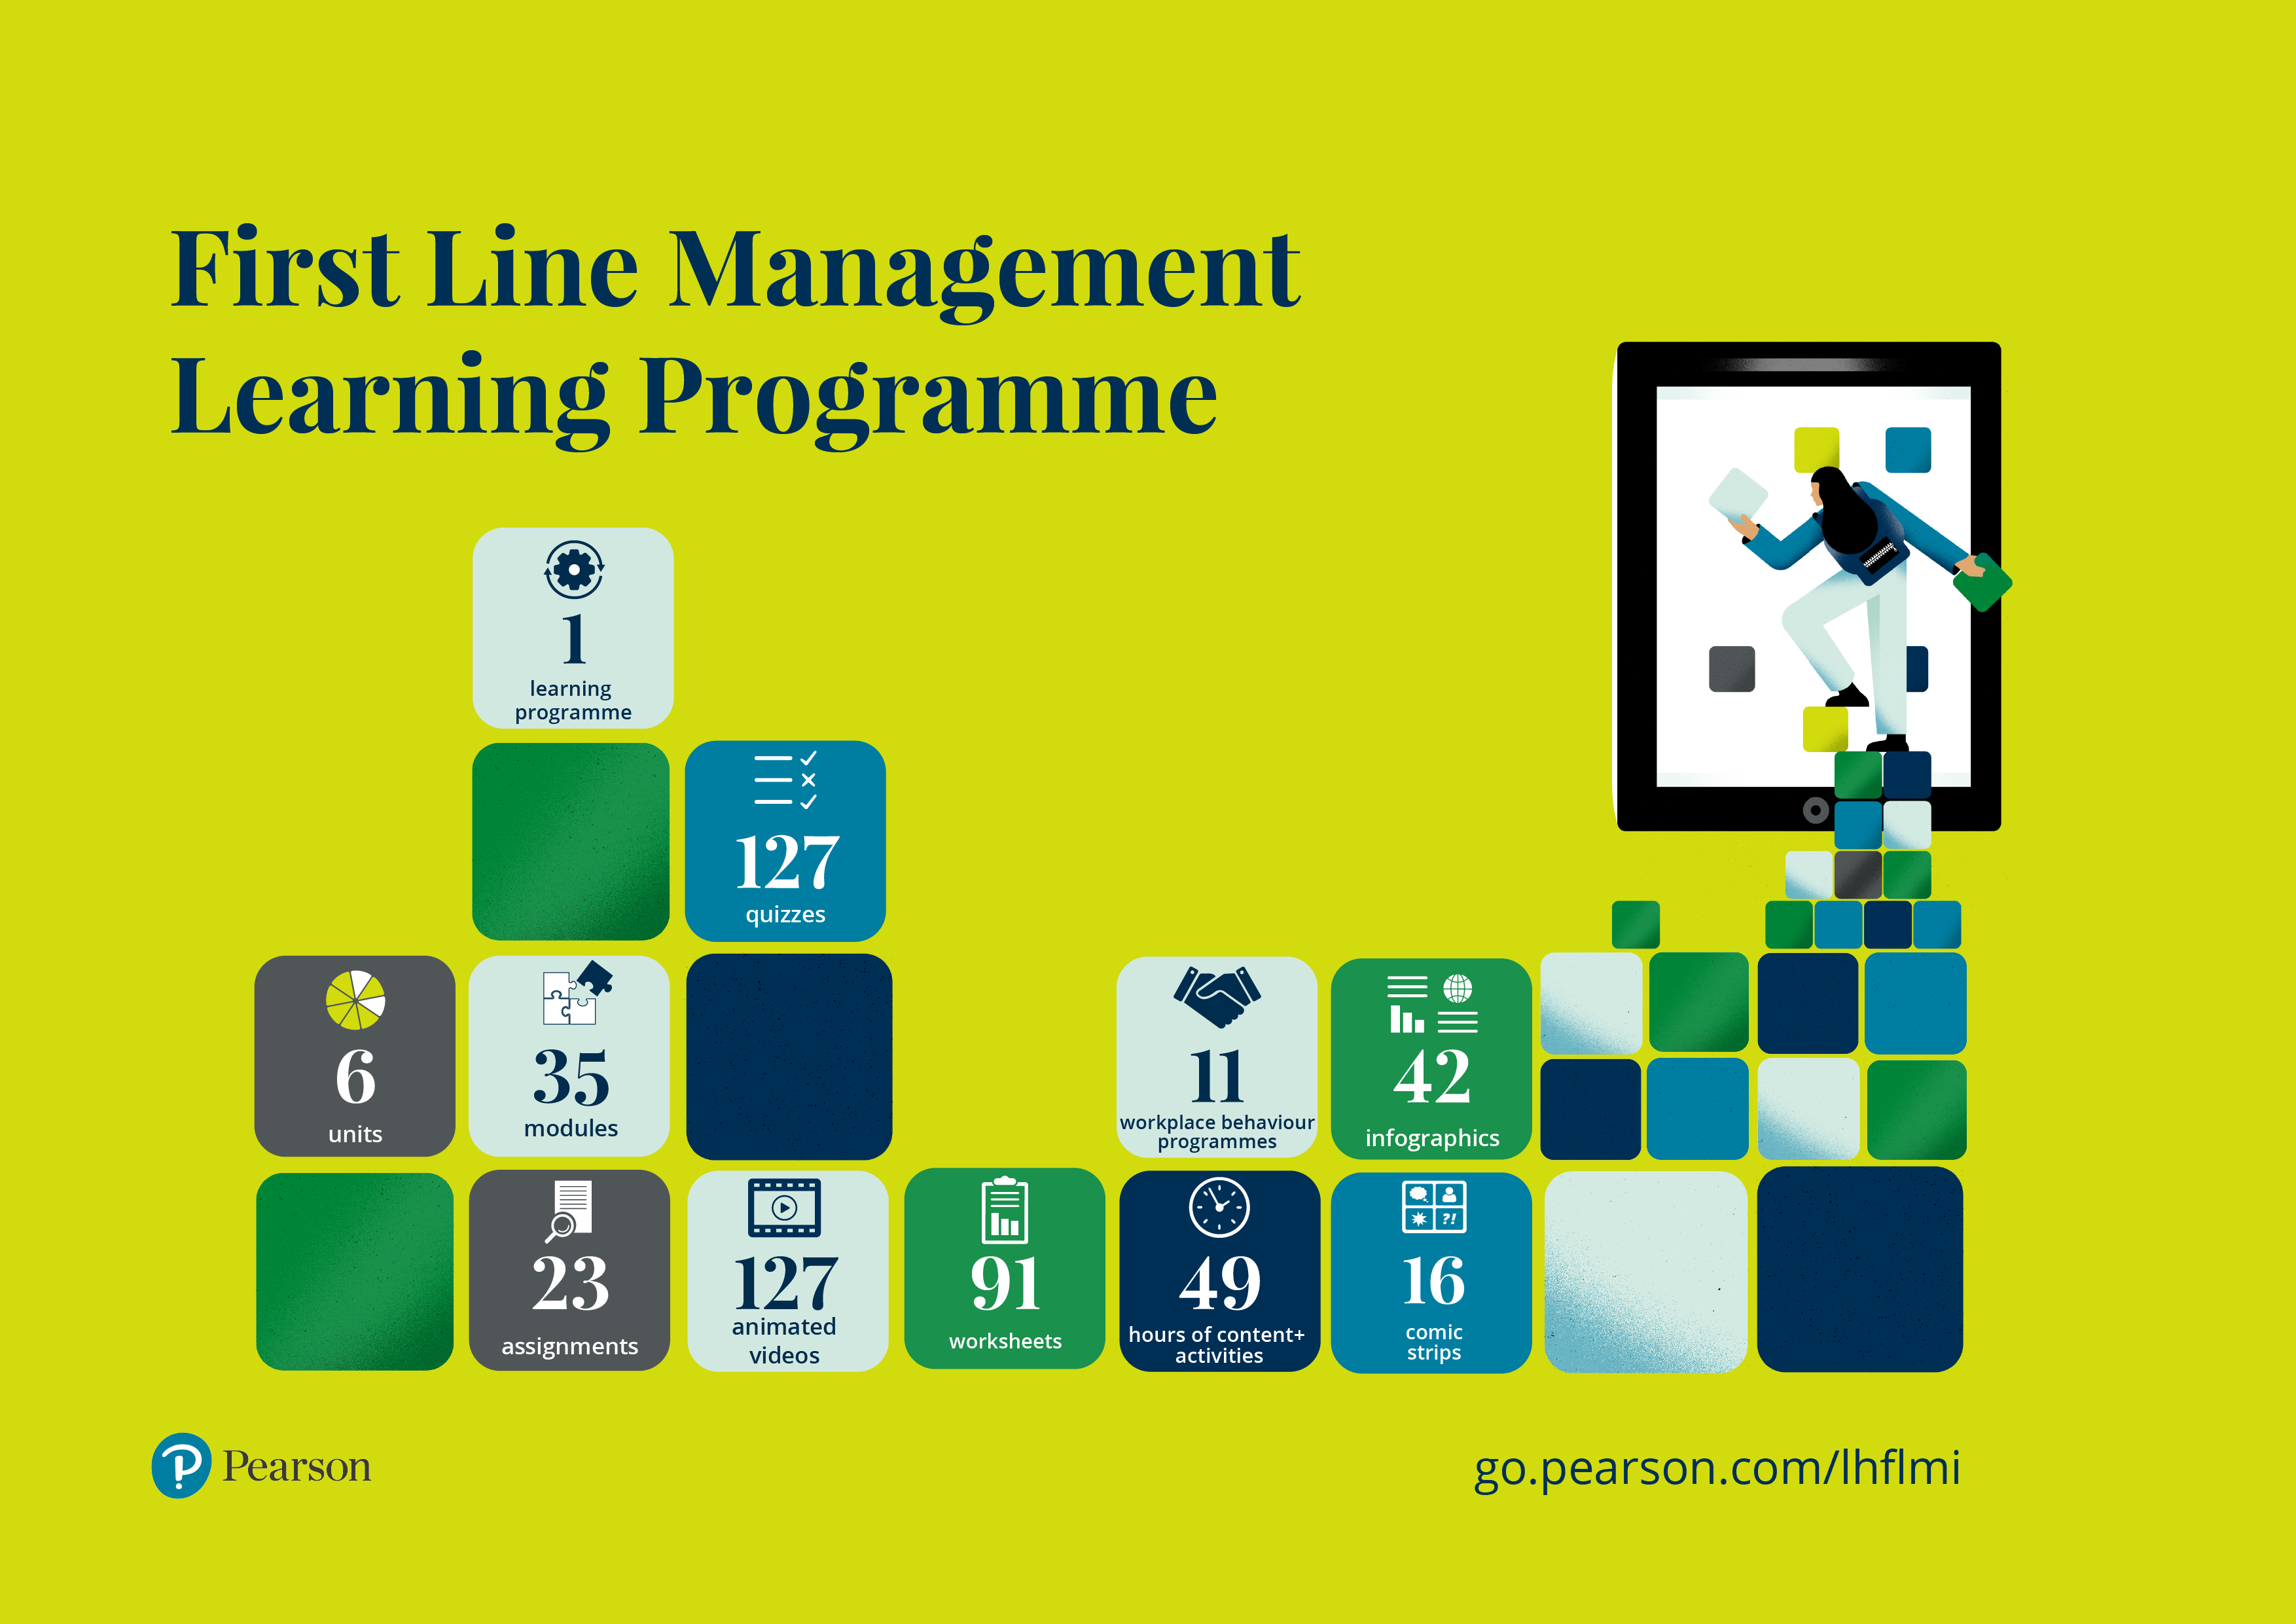 First Line Management infographic